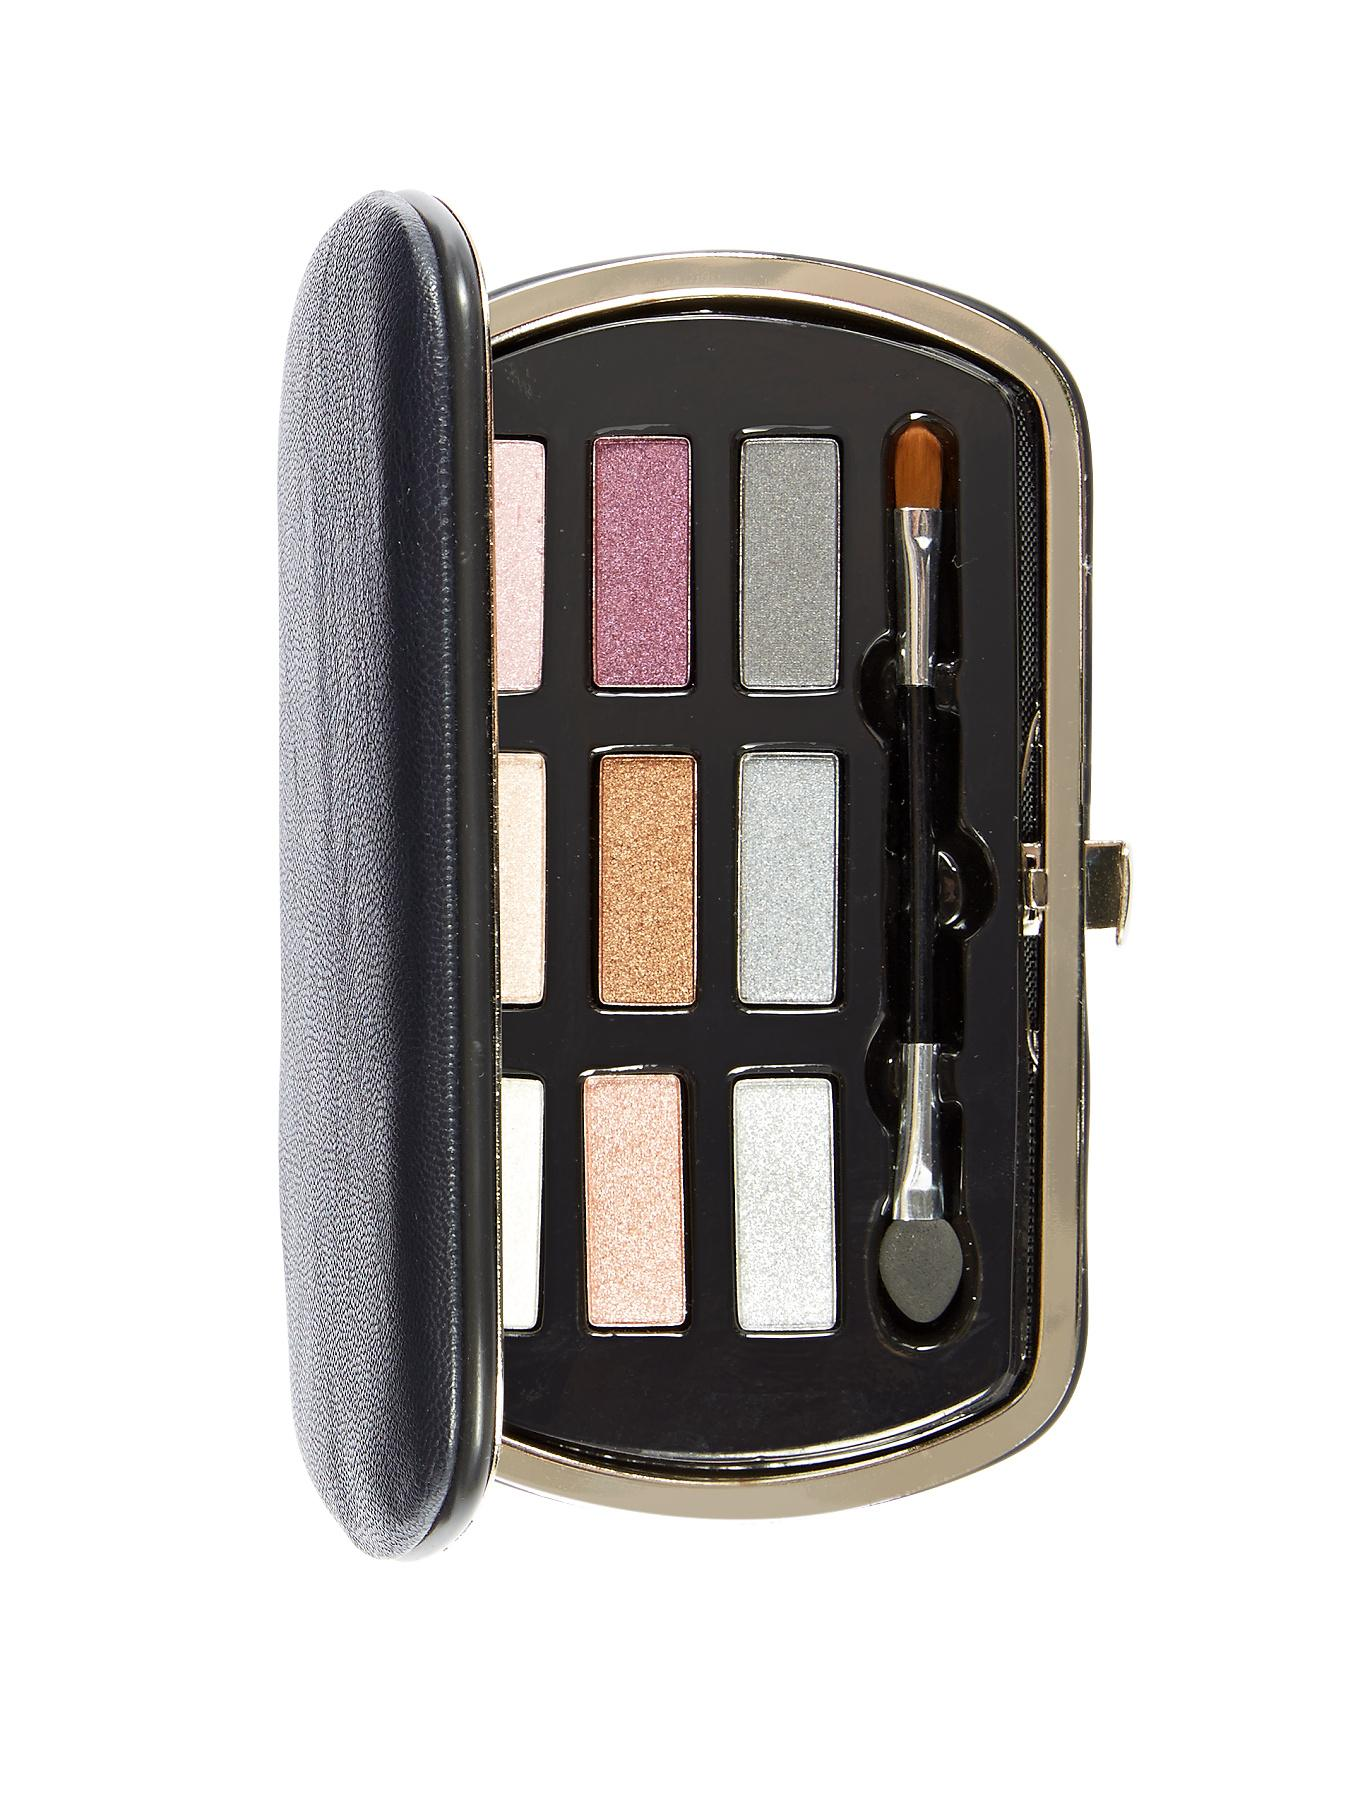 The Indulgence Collection The Indulgence Collection Eyeshadow Clutch Compact